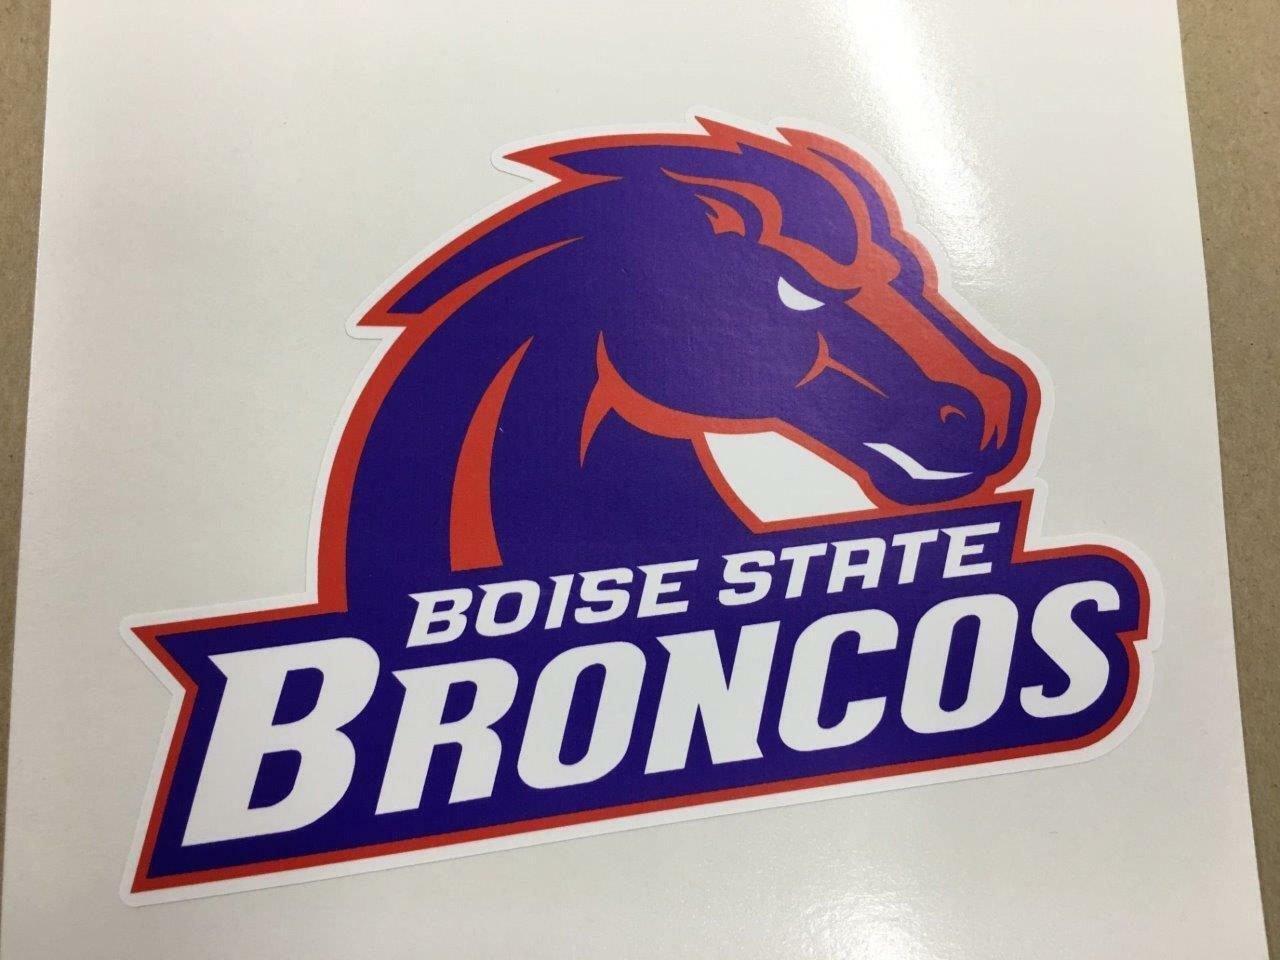 Boise State cornhole board or vehicle  decal(s)BS3  we offer various famous brand